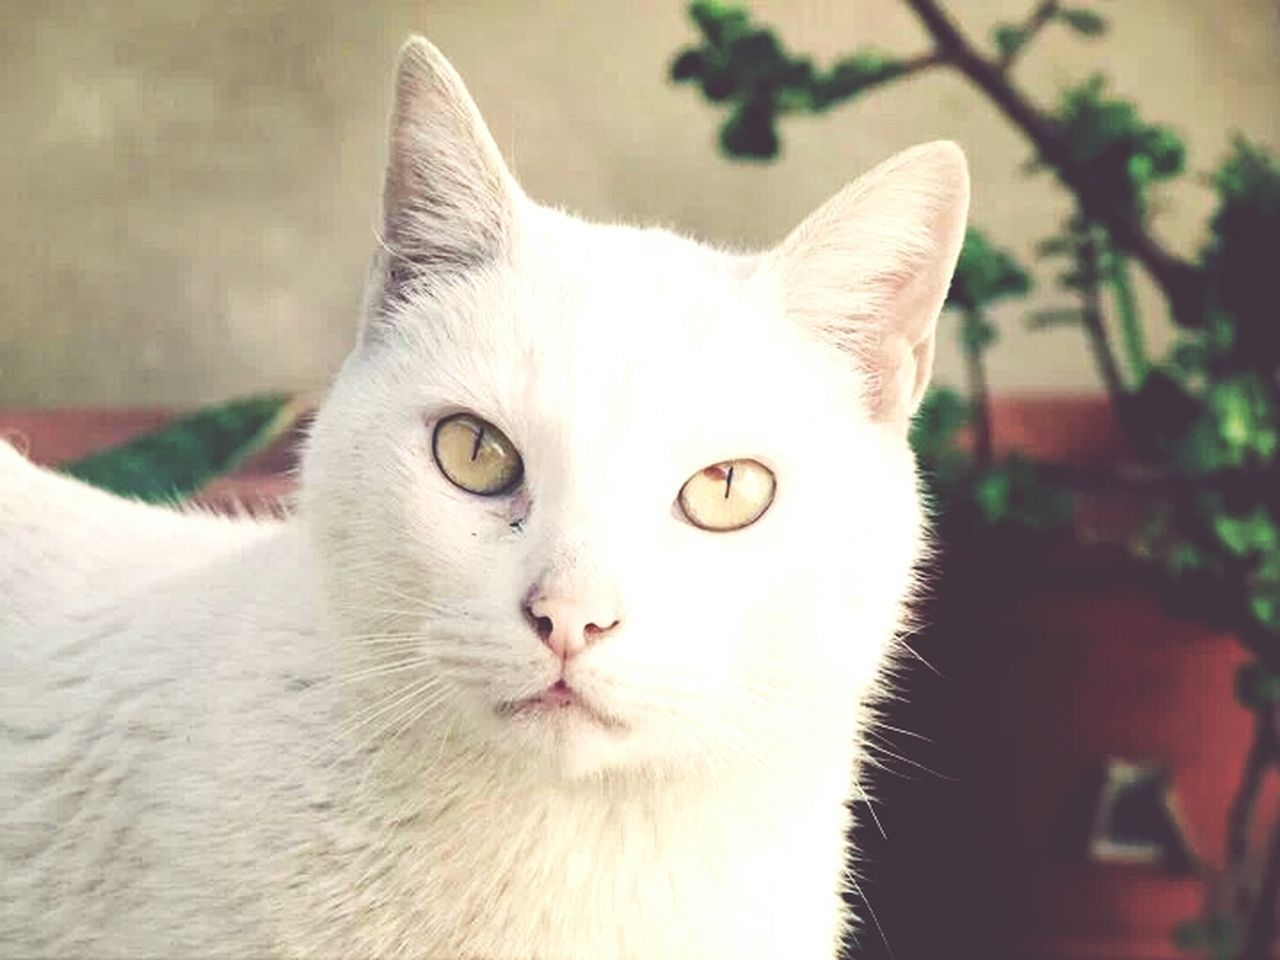 domestic cat, pets, domestic animals, one animal, feline, mammal, animal themes, portrait, looking at camera, close-up, no people, indoors, day, nature